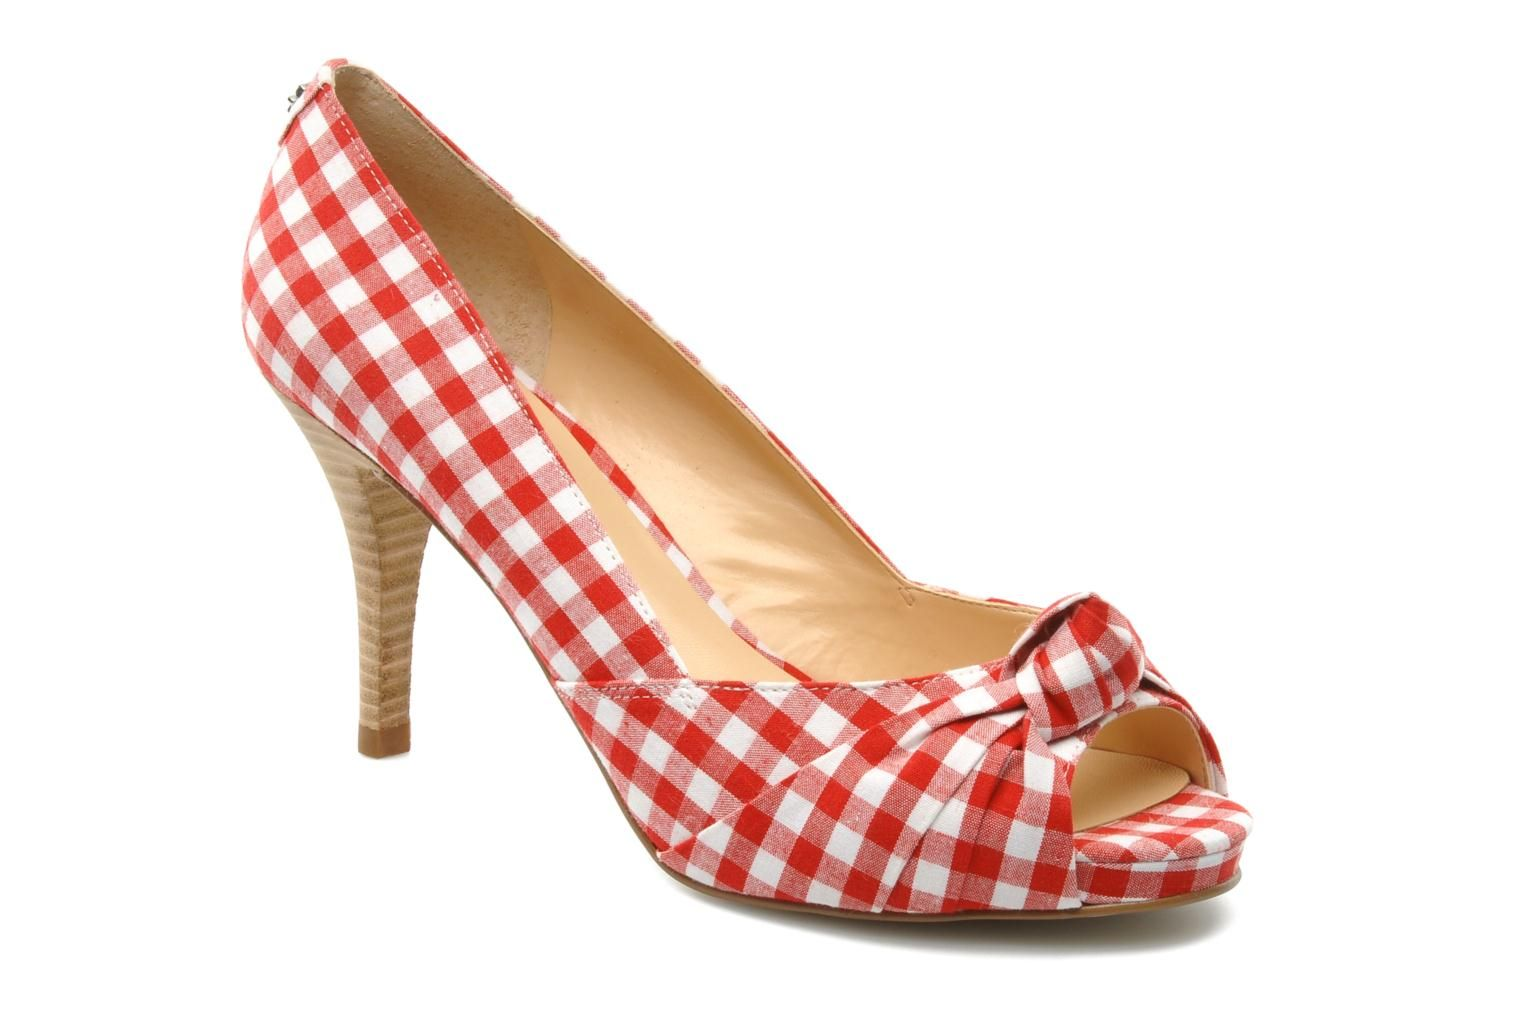 Chaussures femme Guess - Escarpins vichy rouge blanc   Chaussures ... 27b21f4a0dfe